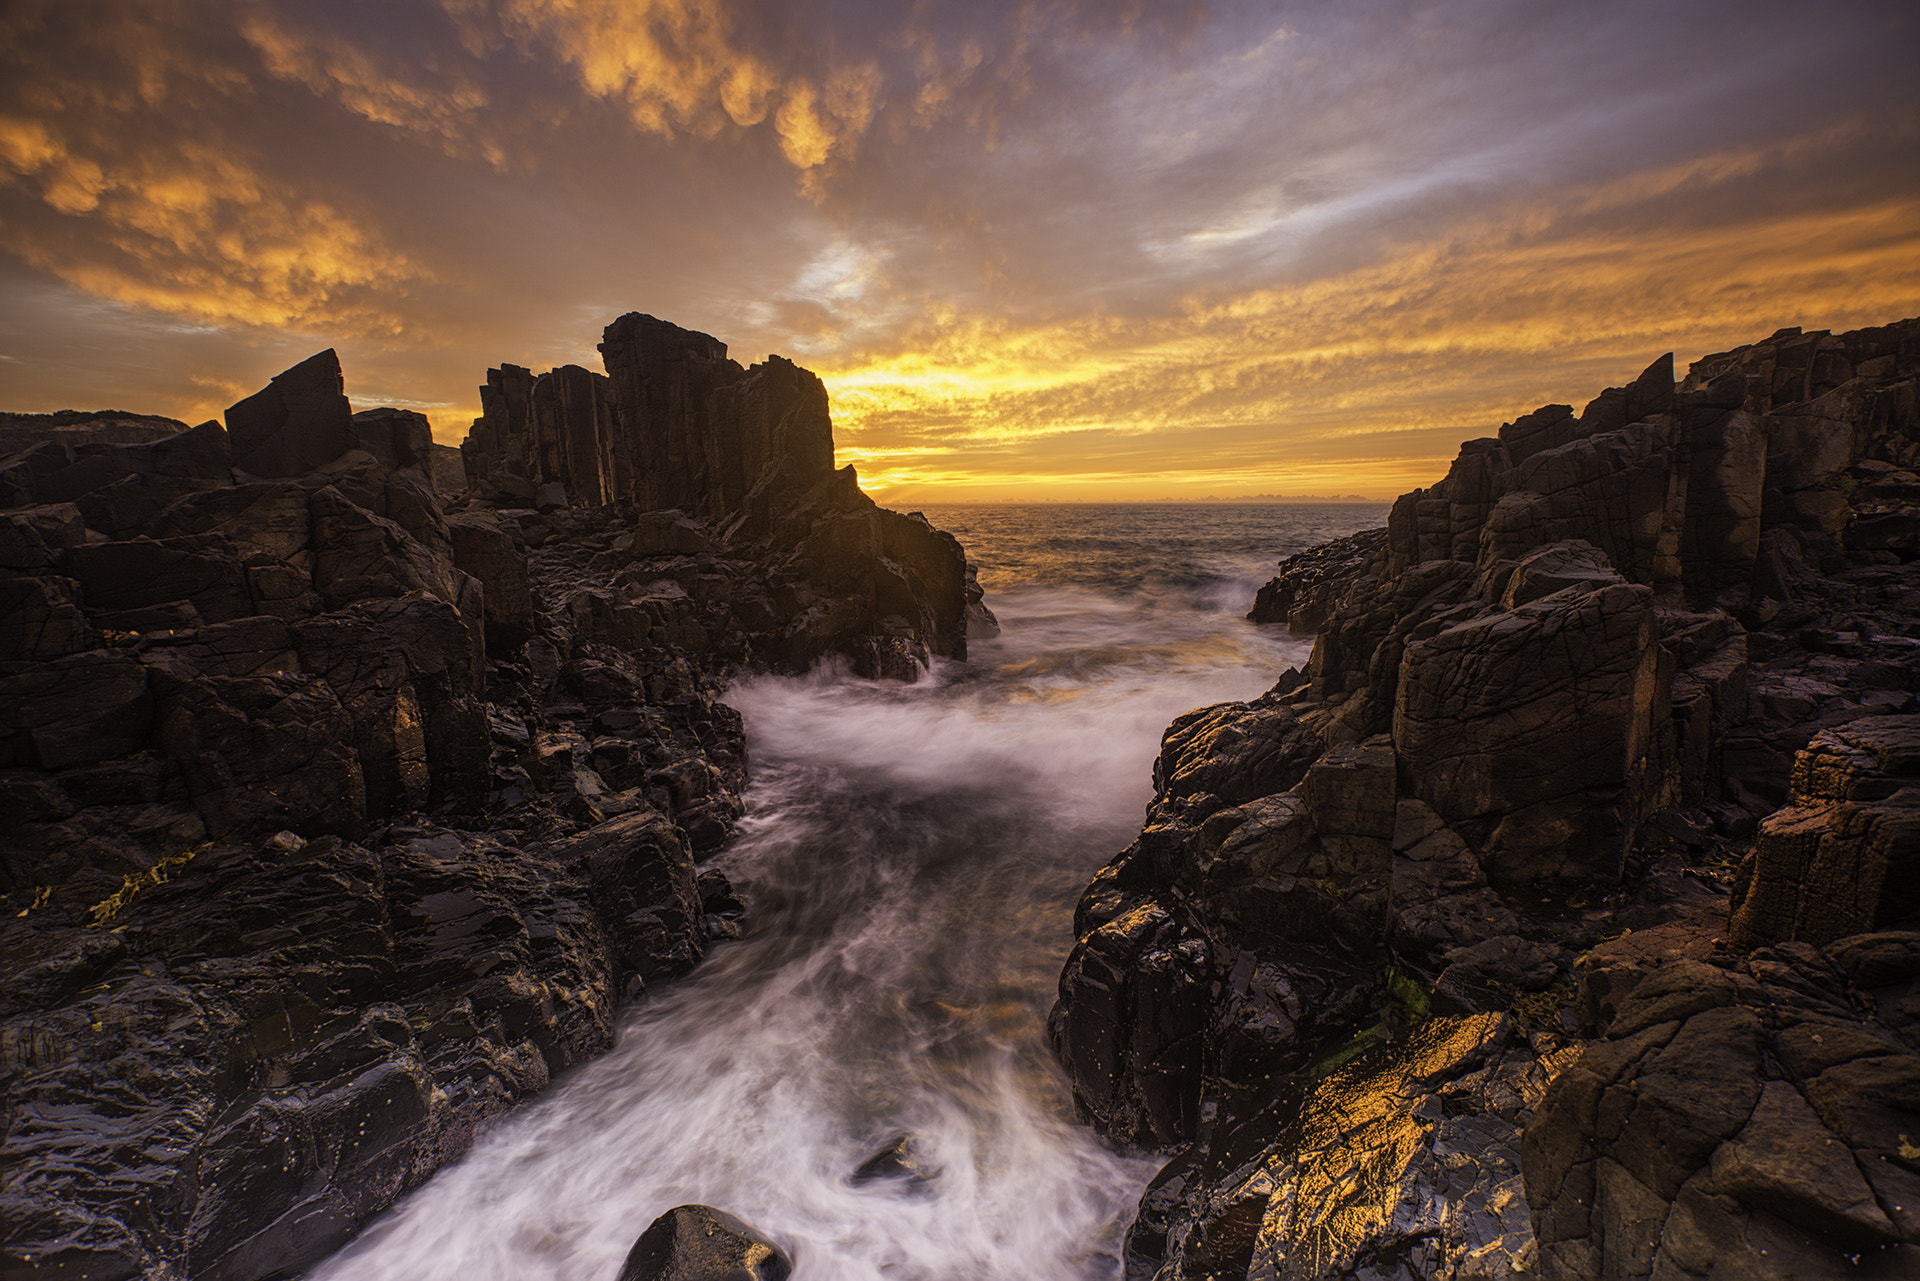 Photograph Bombo Quarry by Adrian De Vittor on 500px